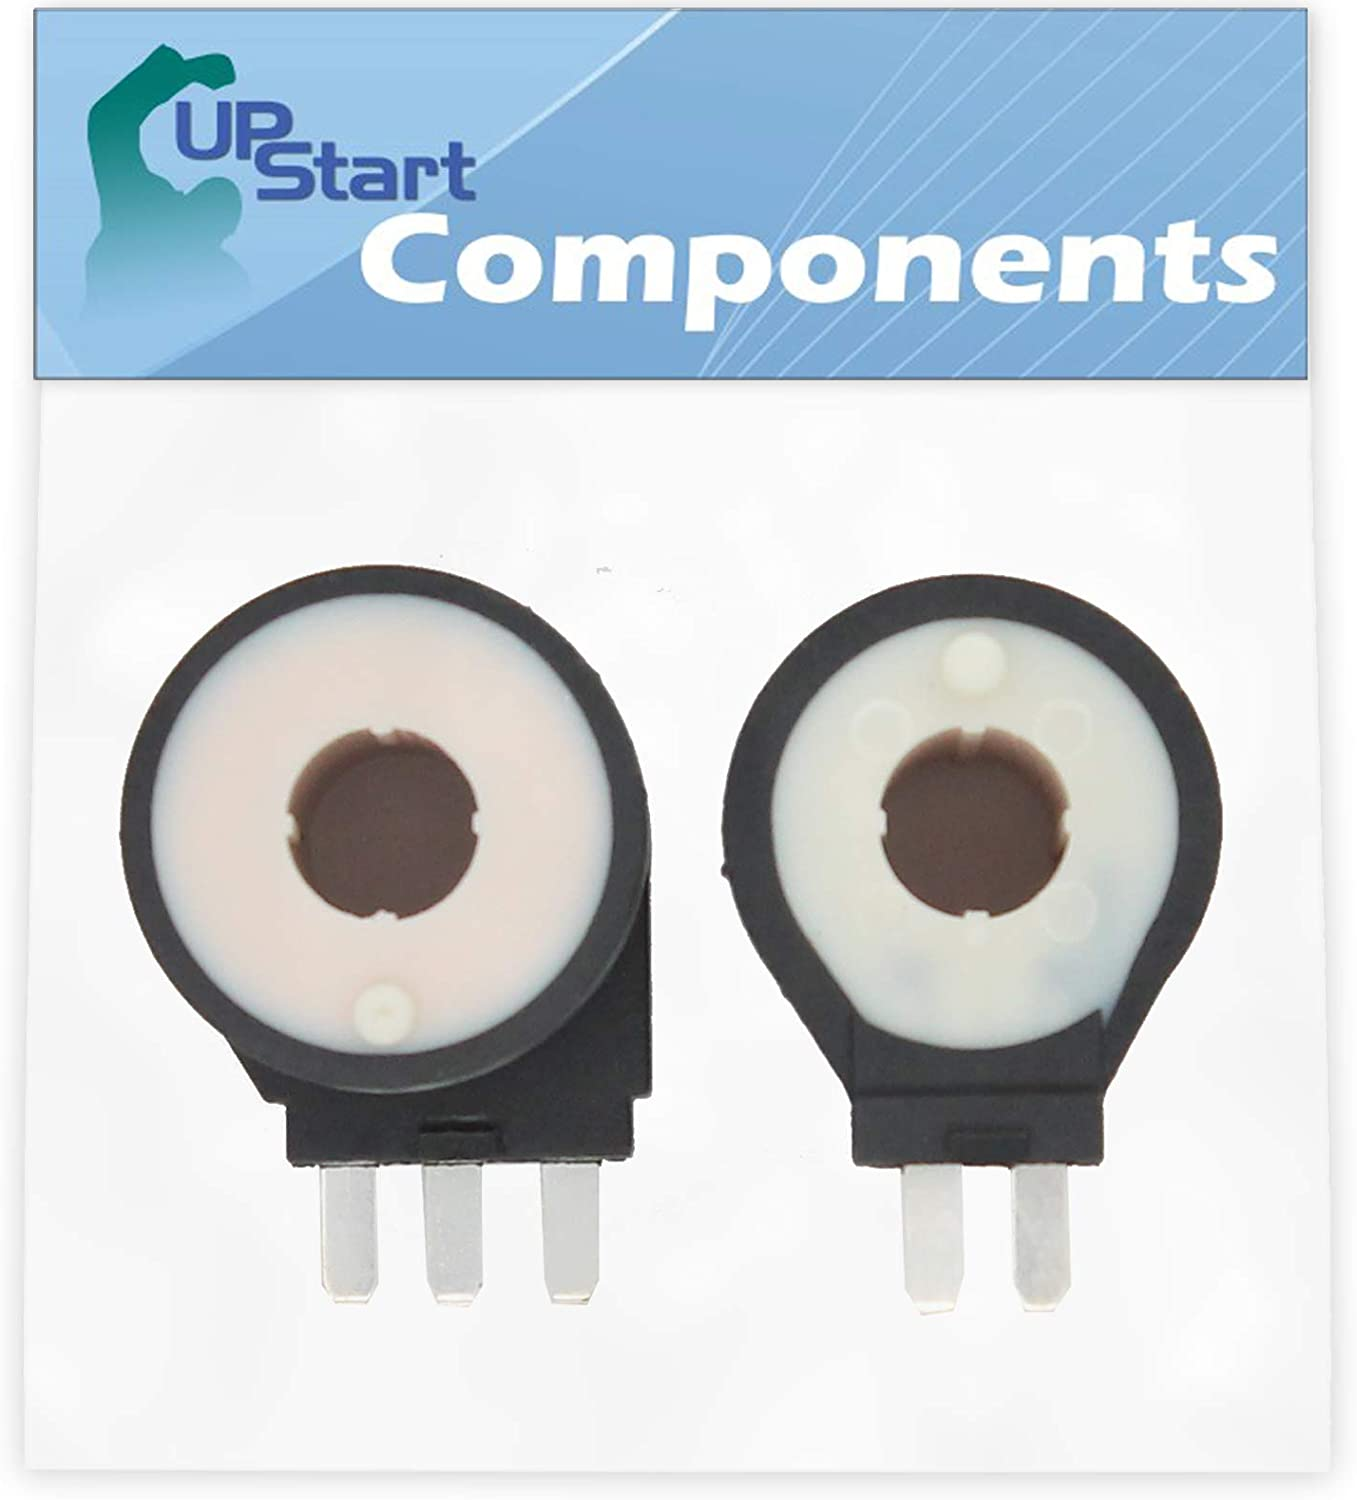 279834 Gas Dryer Coil Kit Replacement for Maytag SDG4606AWW Dryer - Compatible with 279834 Dryer Gas Valve Ignition Solenoid Coil Kit - UpStart Components Brand